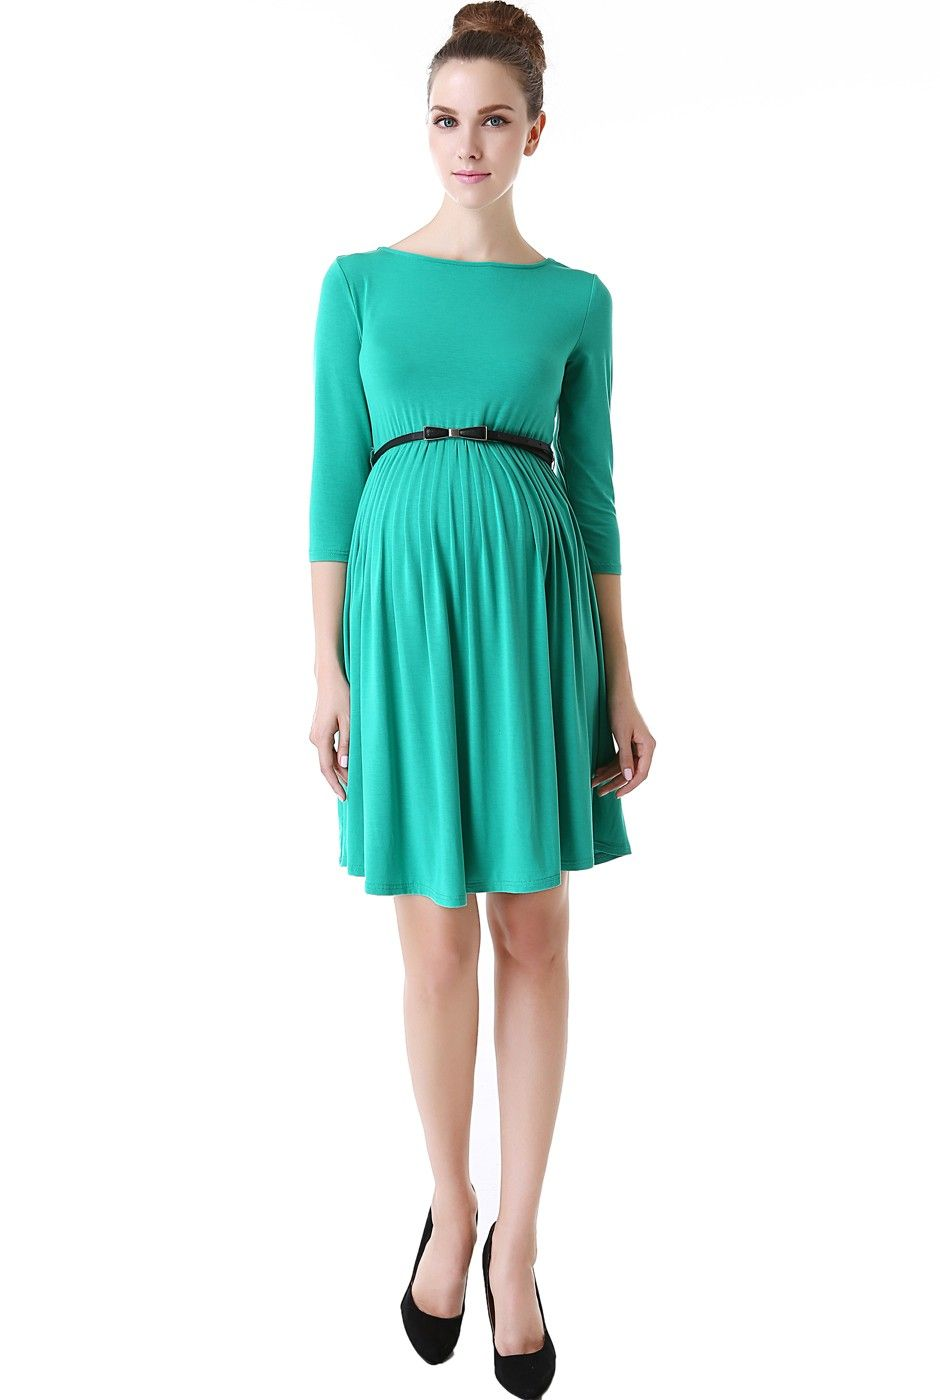 Momo maternity shannon pleated midi dress check out this great momo maternity shannon pleated midi dress check out this great style for 44 ombrellifo Image collections